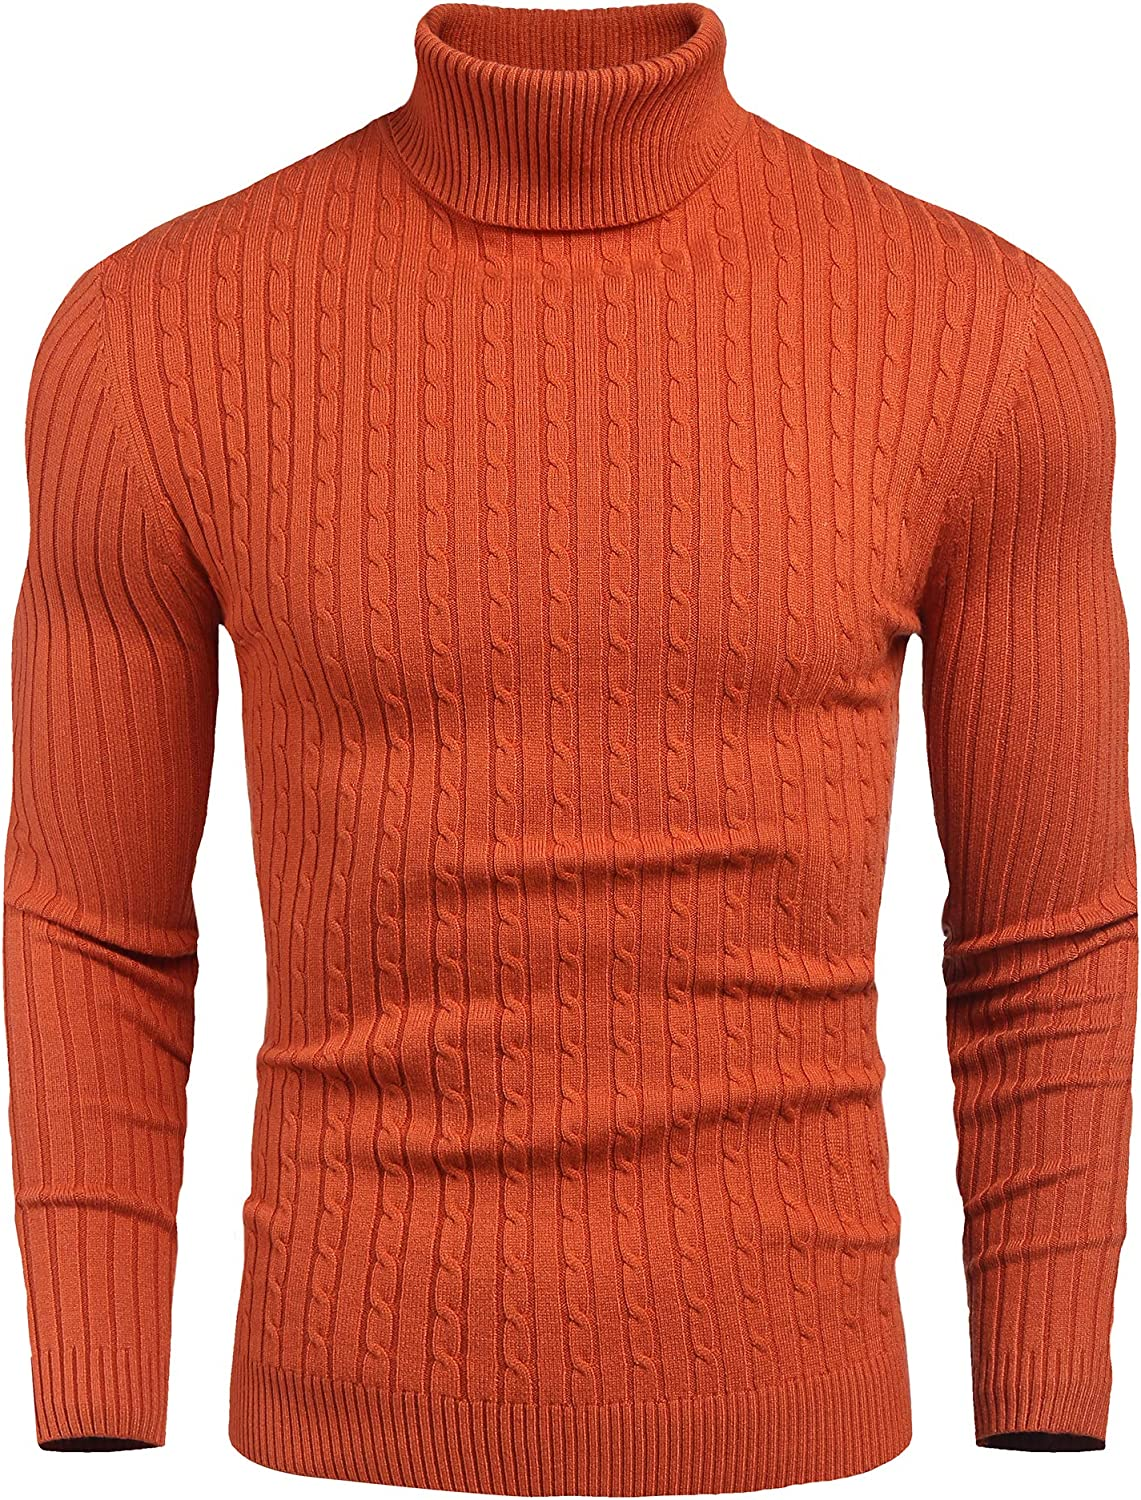 Nine Bull Mens Slim Fit Turtleneck Sweater Cable Knit Thermal Pullover Sweater At Amazon Men S Clothing Store